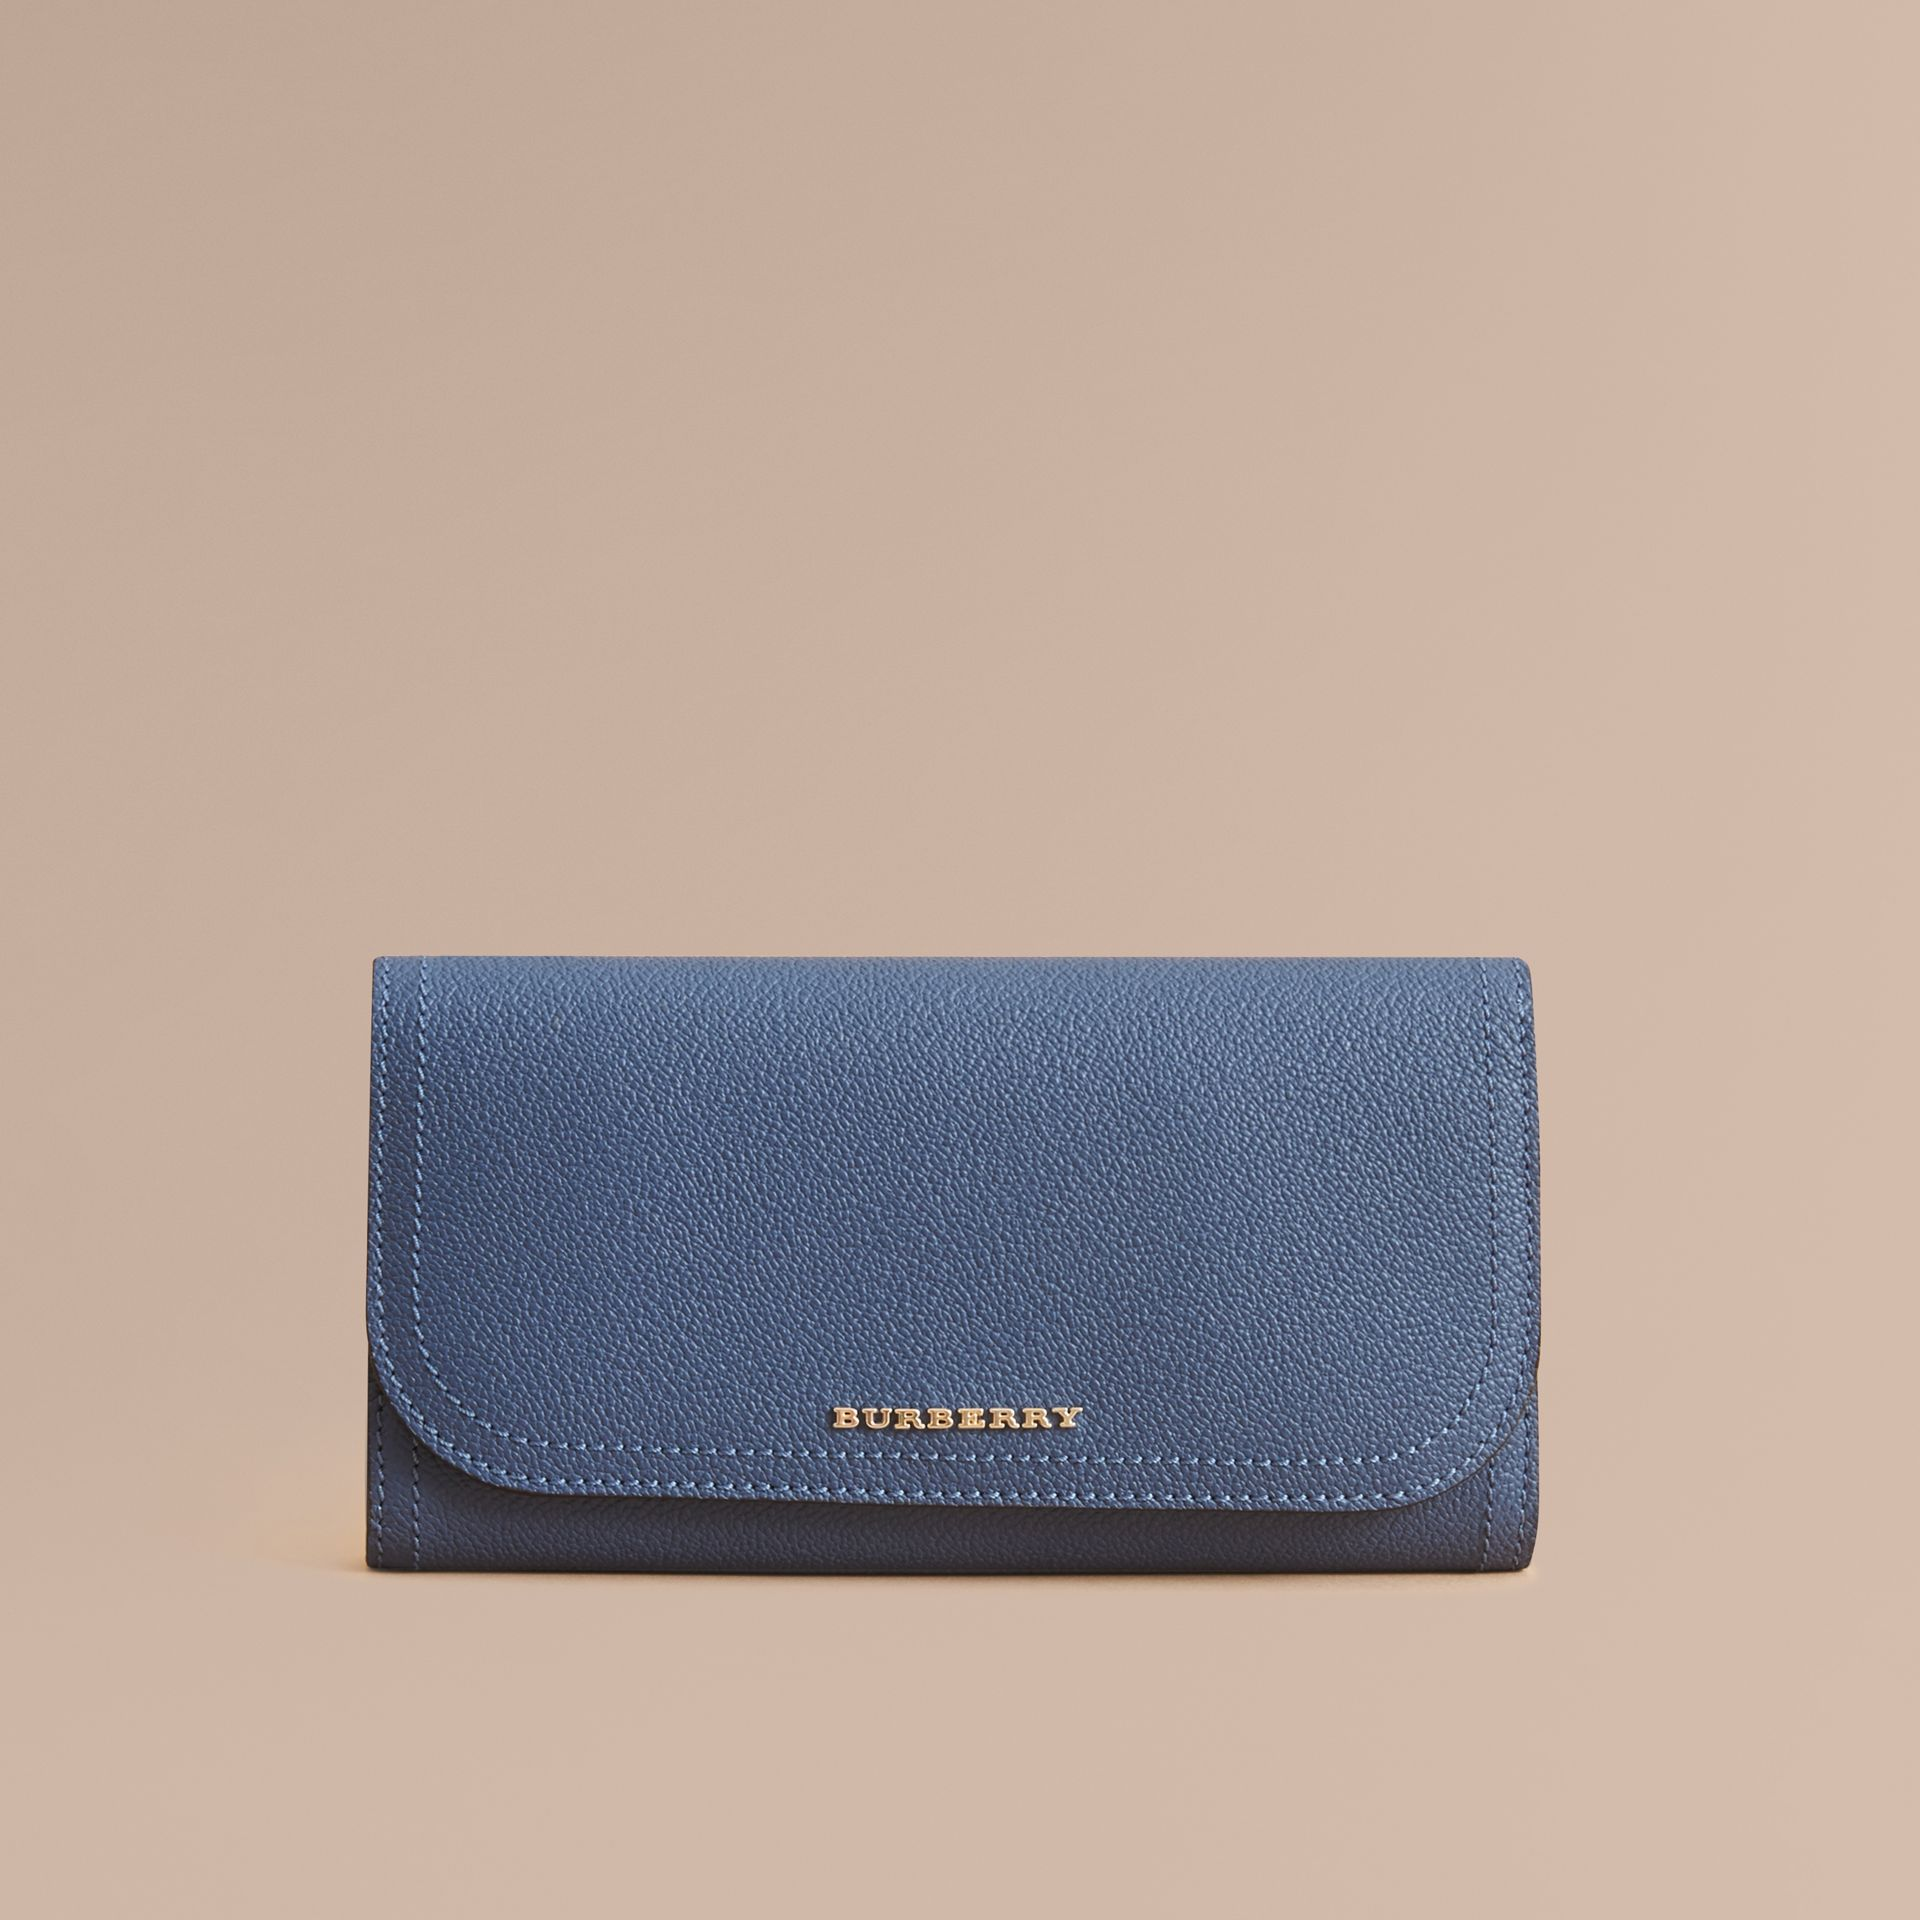 Two-tone Leather Continental Wallet and Coin Case in Steel Blue/multi - Women | Burberry United States - gallery image 3